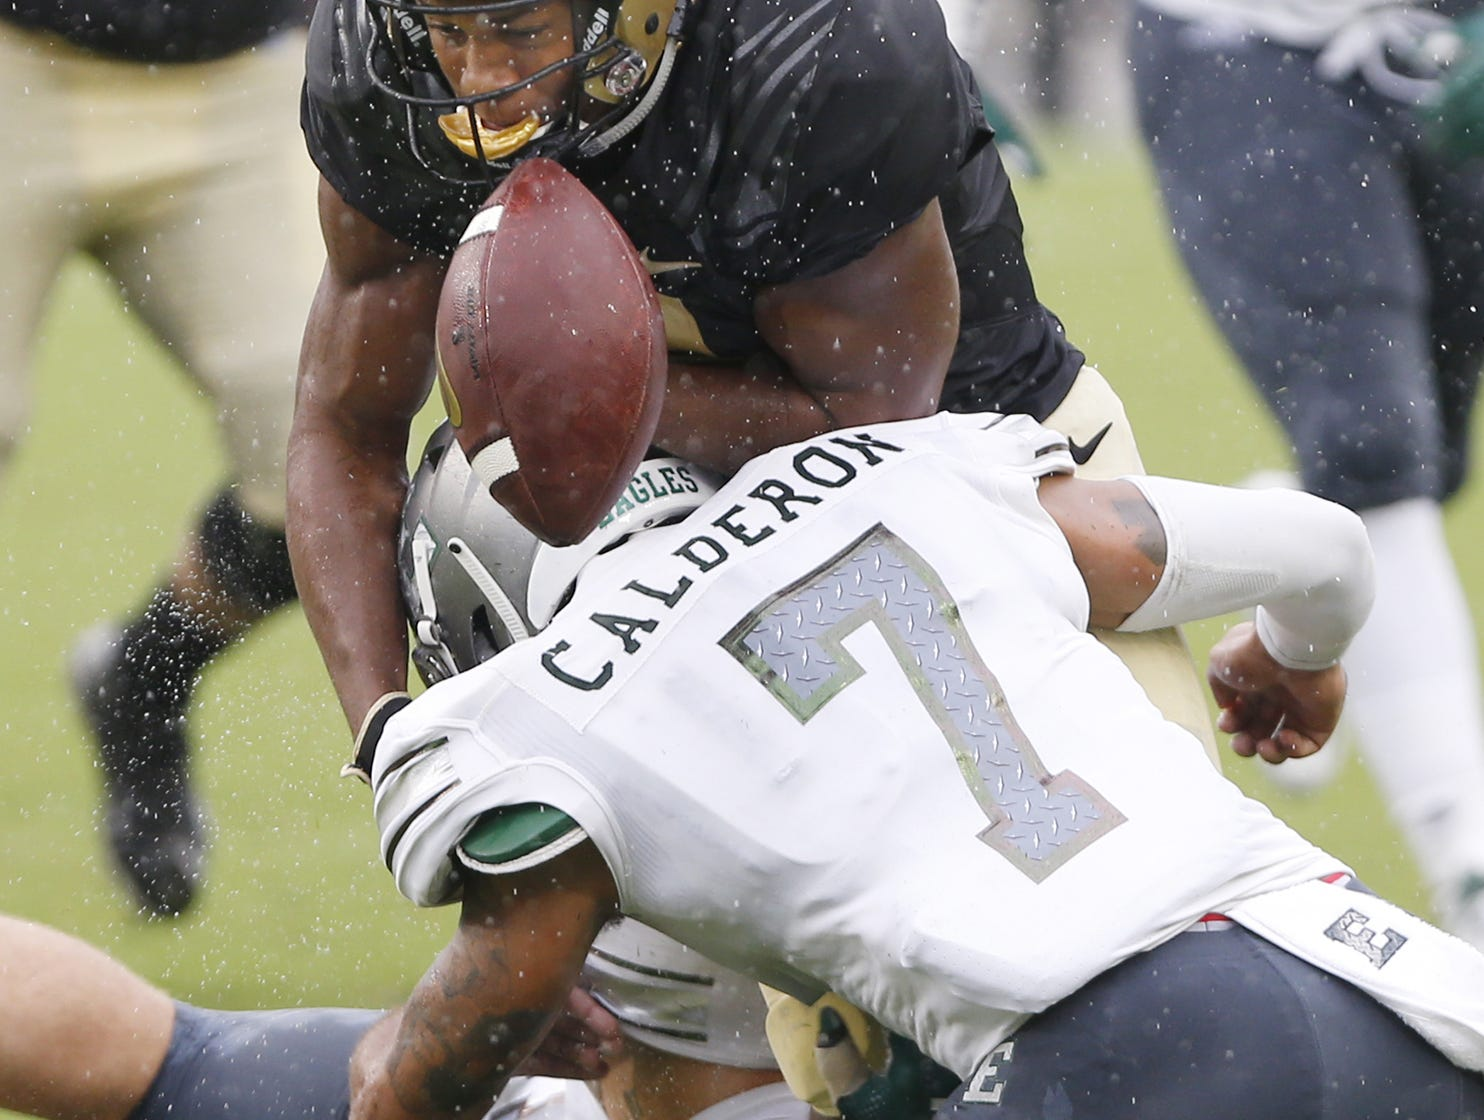 Rondale Moore of Purdue fumbles the ball as he is hit by Ikie Calderon of Eastern Michigan in the first half Saturday, September 8, 2018, in West Lafayette. Purdue fell to Eastern Michigan 20-19.